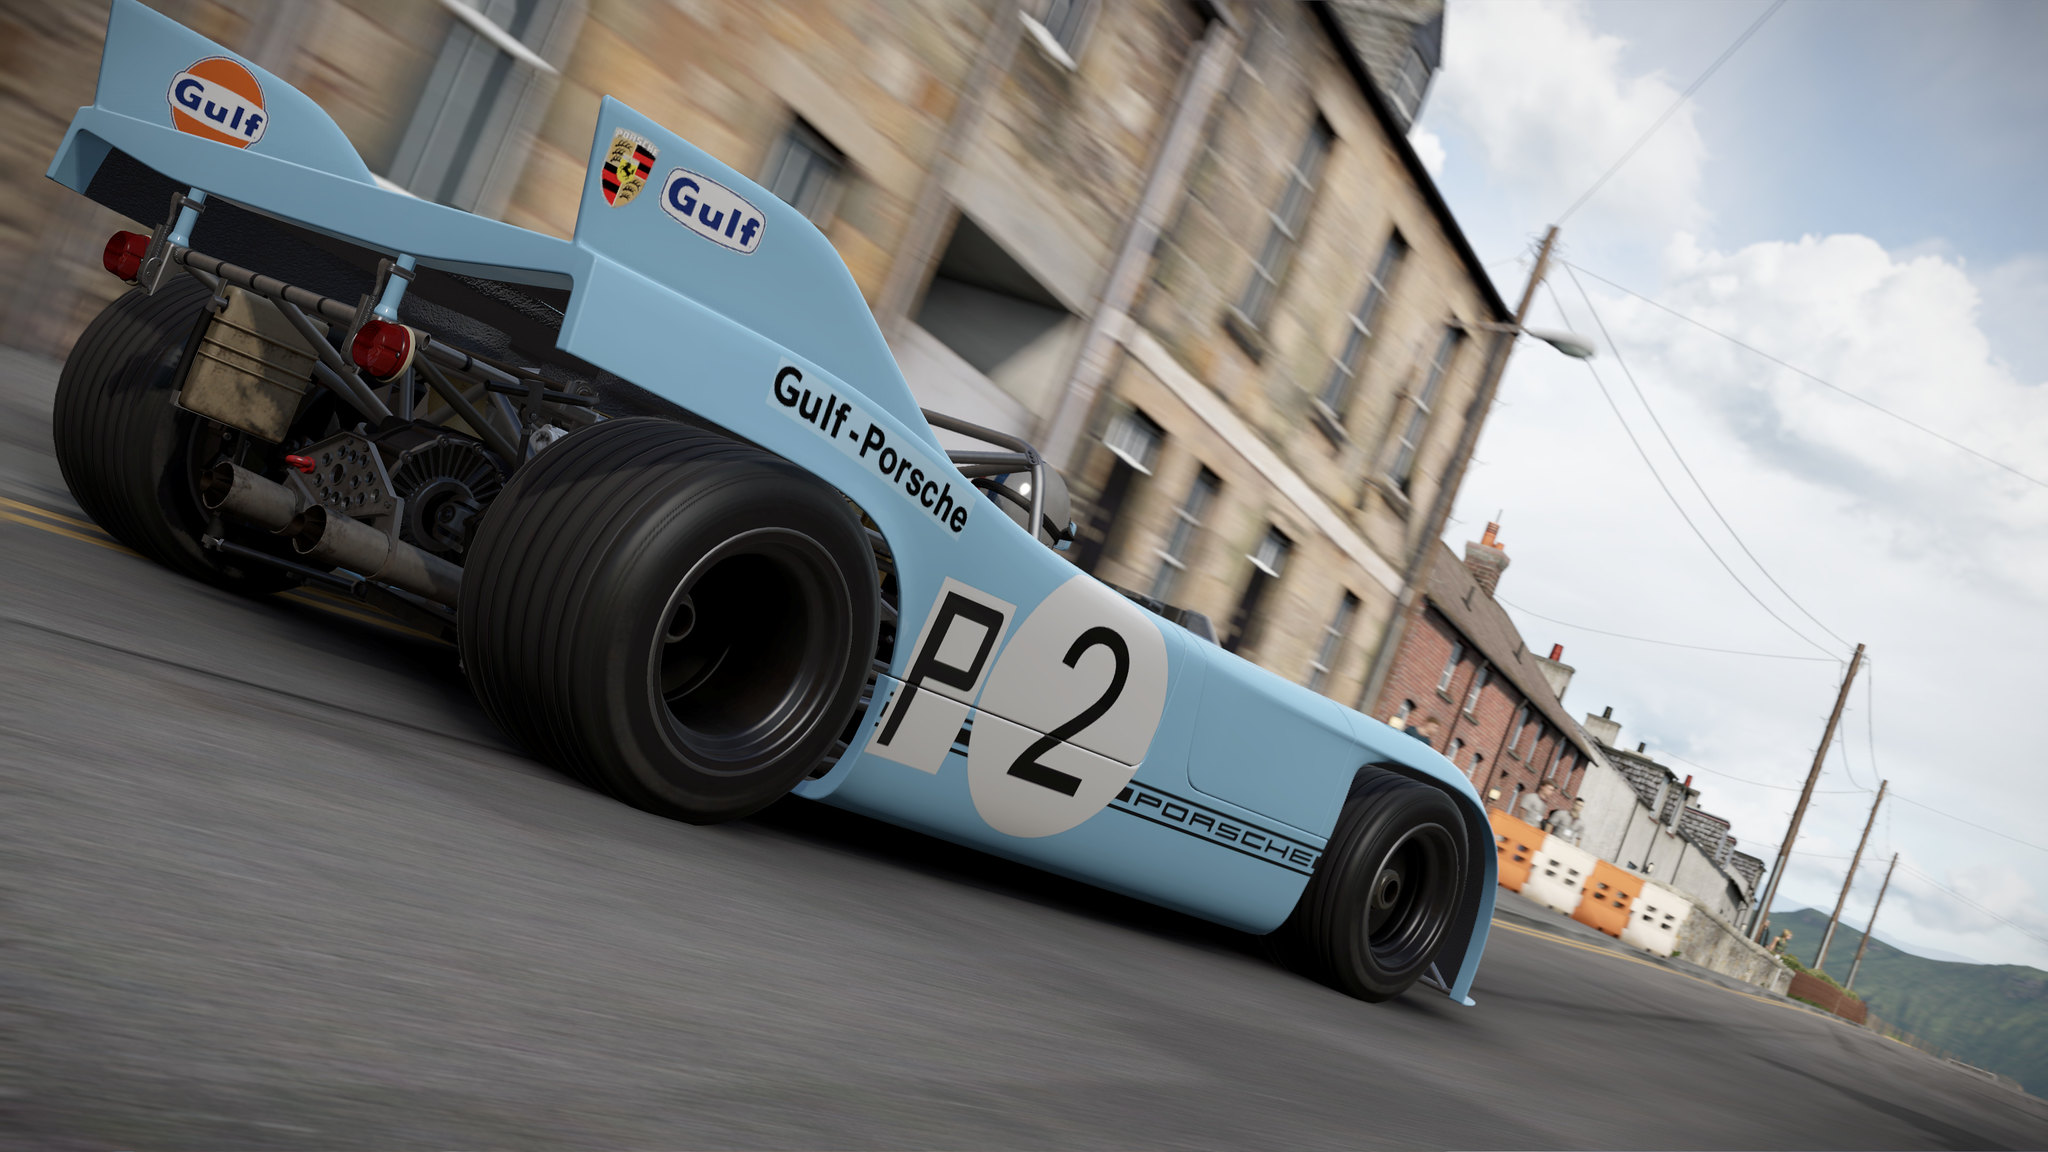 Project-CARS-2-Porsche-Legends-Pack-Porsche-908-903-Spyder